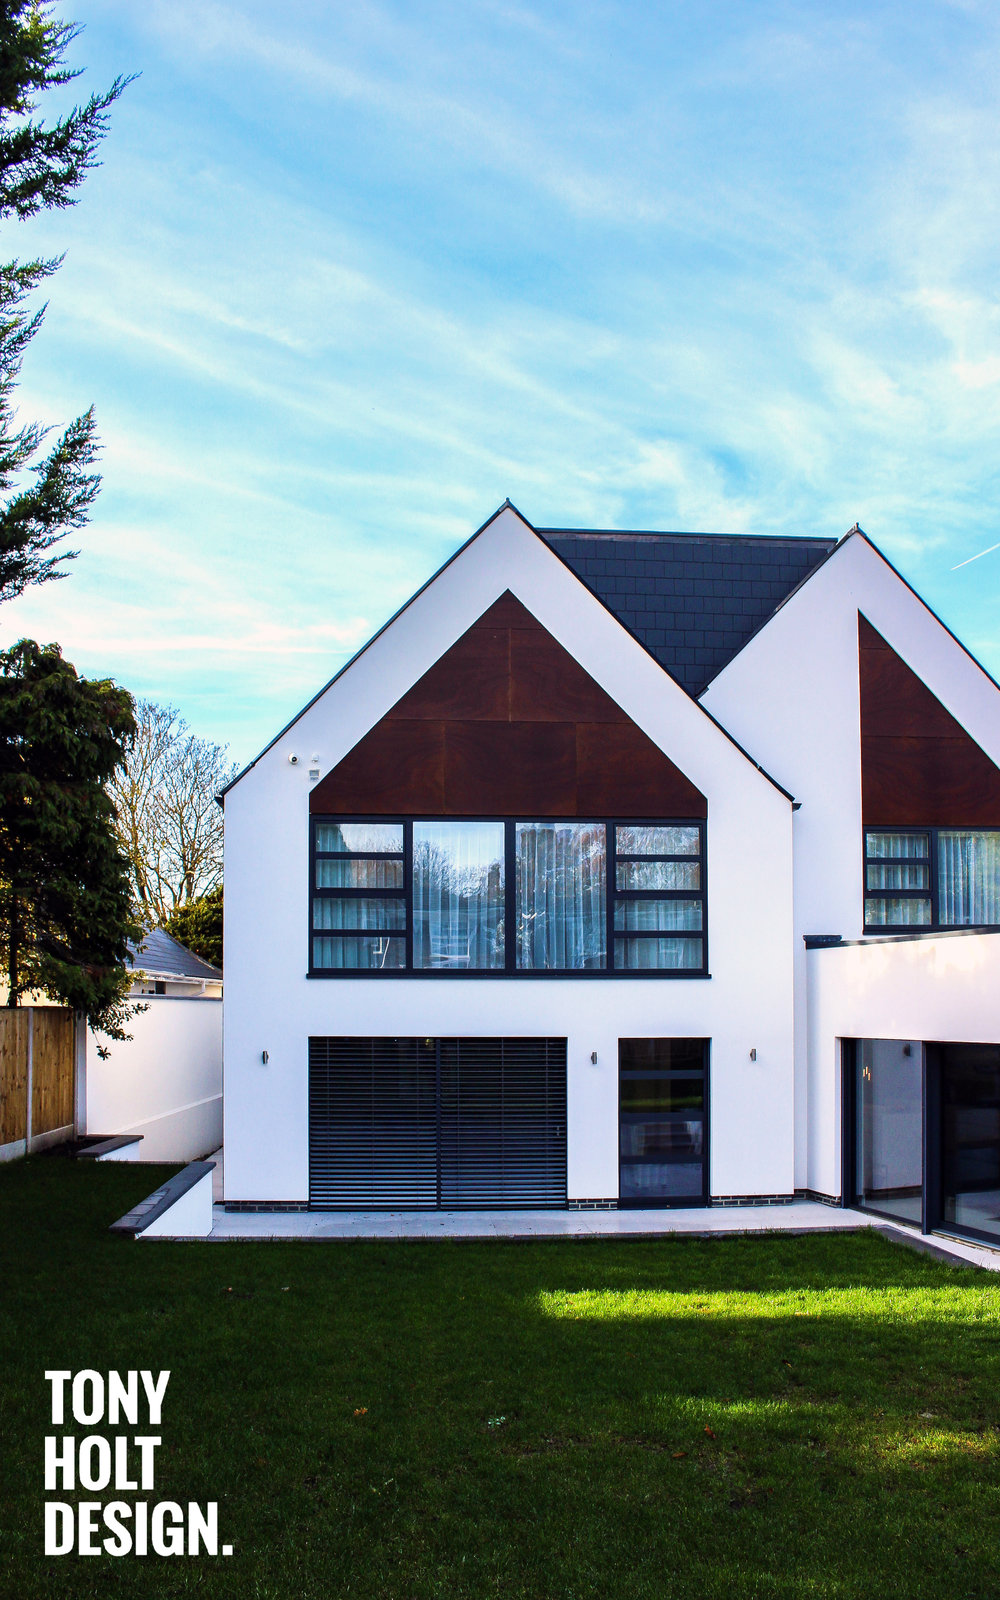 Tony Holt Design_Self Build_New Build_Exterior_01_WEB17.jpg